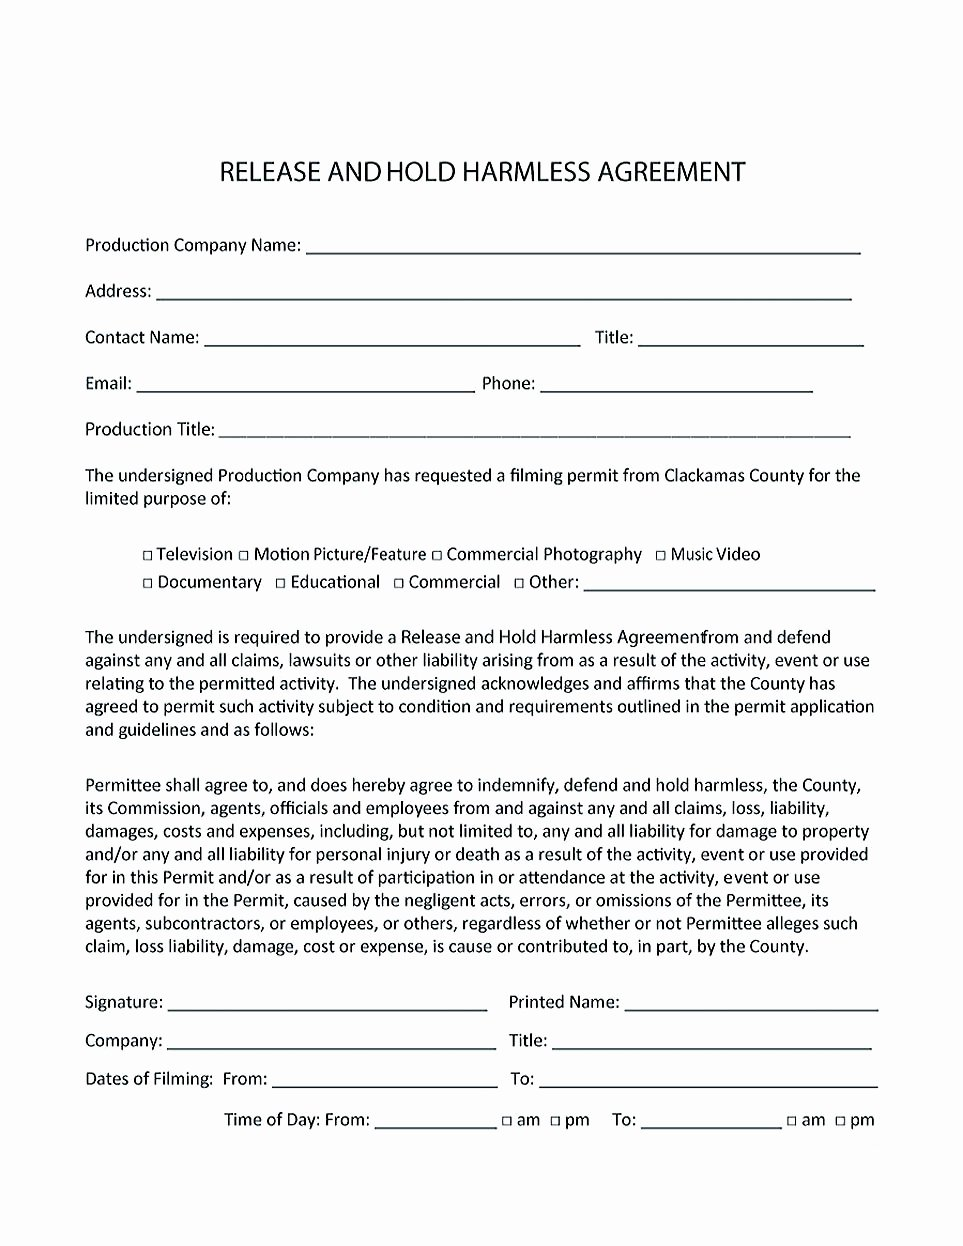 Hold Harmless Agreement Sample Wording Awesome Making Hold Harmless Agreement Template for Different Purposes